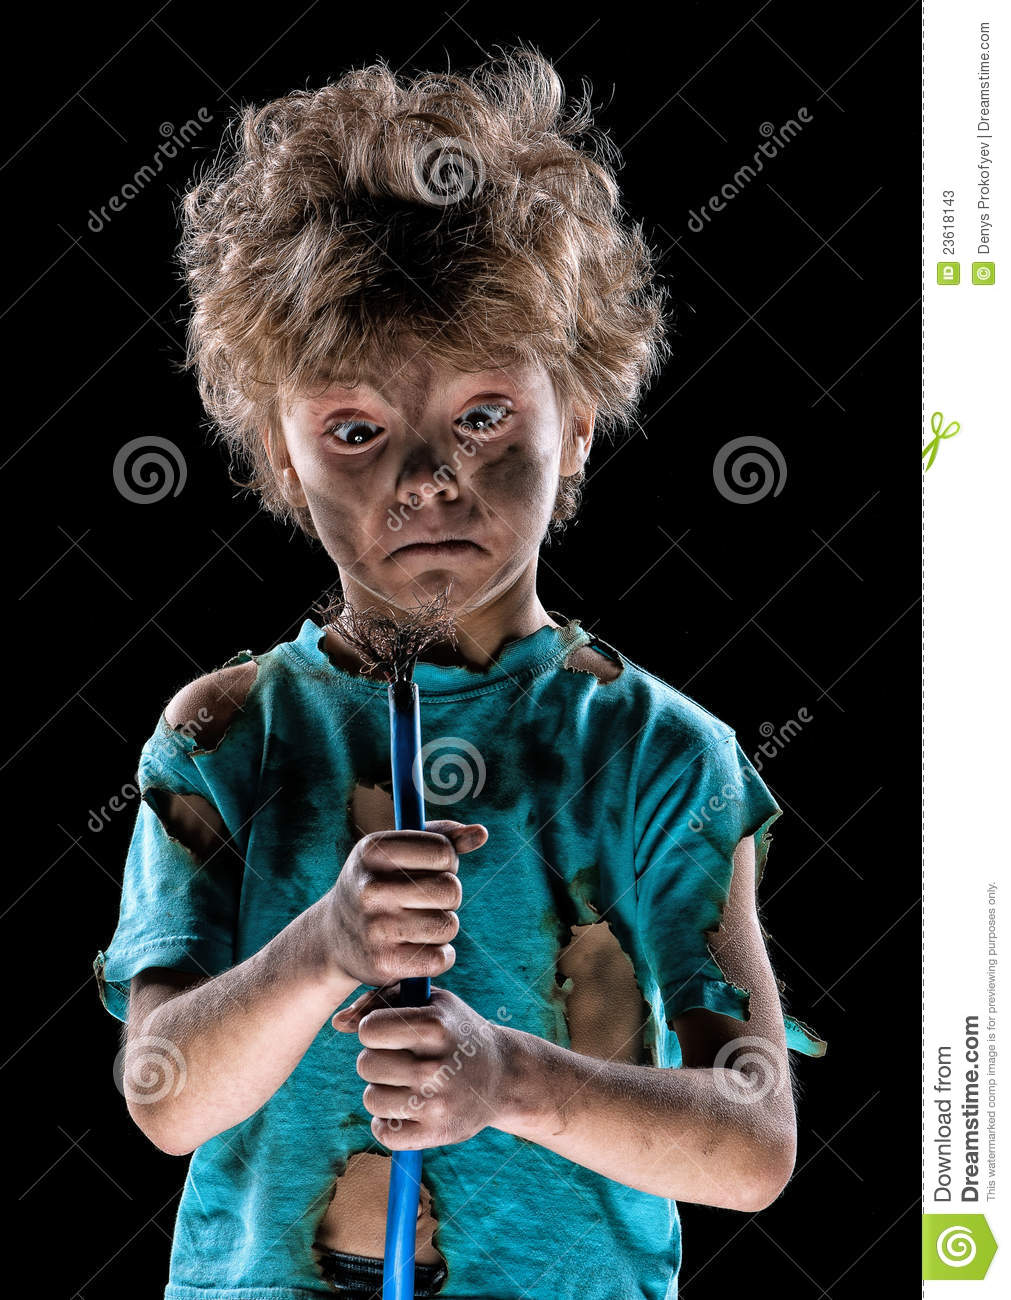 Funny Little Electrician Stock Photos Image 23618143